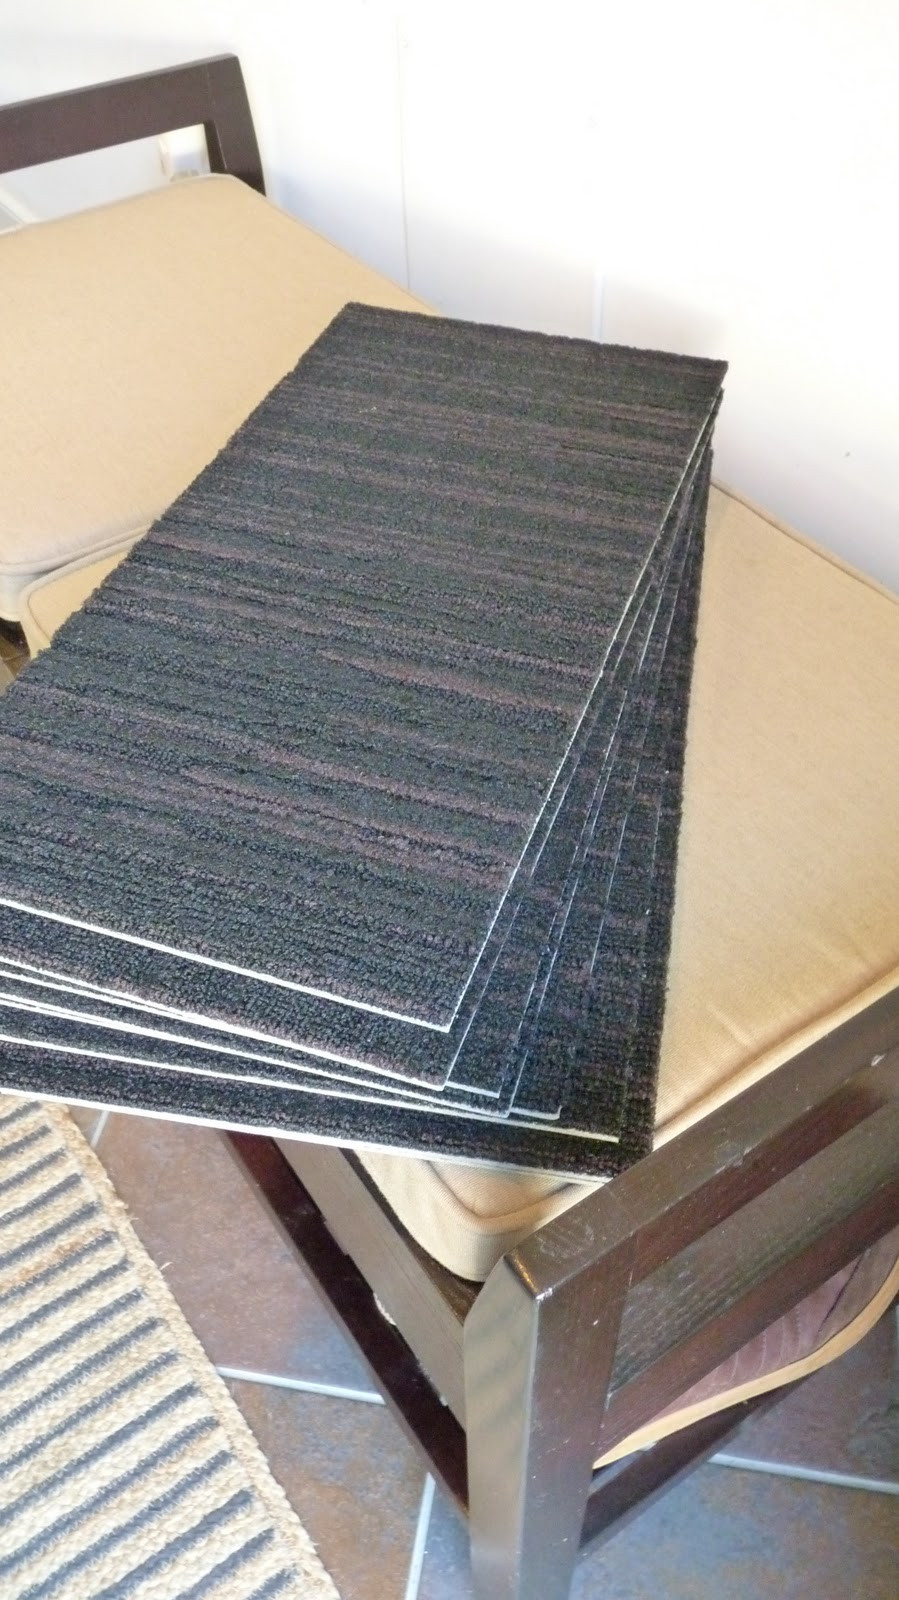 Best ideas about DIY Stair Treads . Save or Pin DiSabella Design DIY Carpet Stair Treads Now.